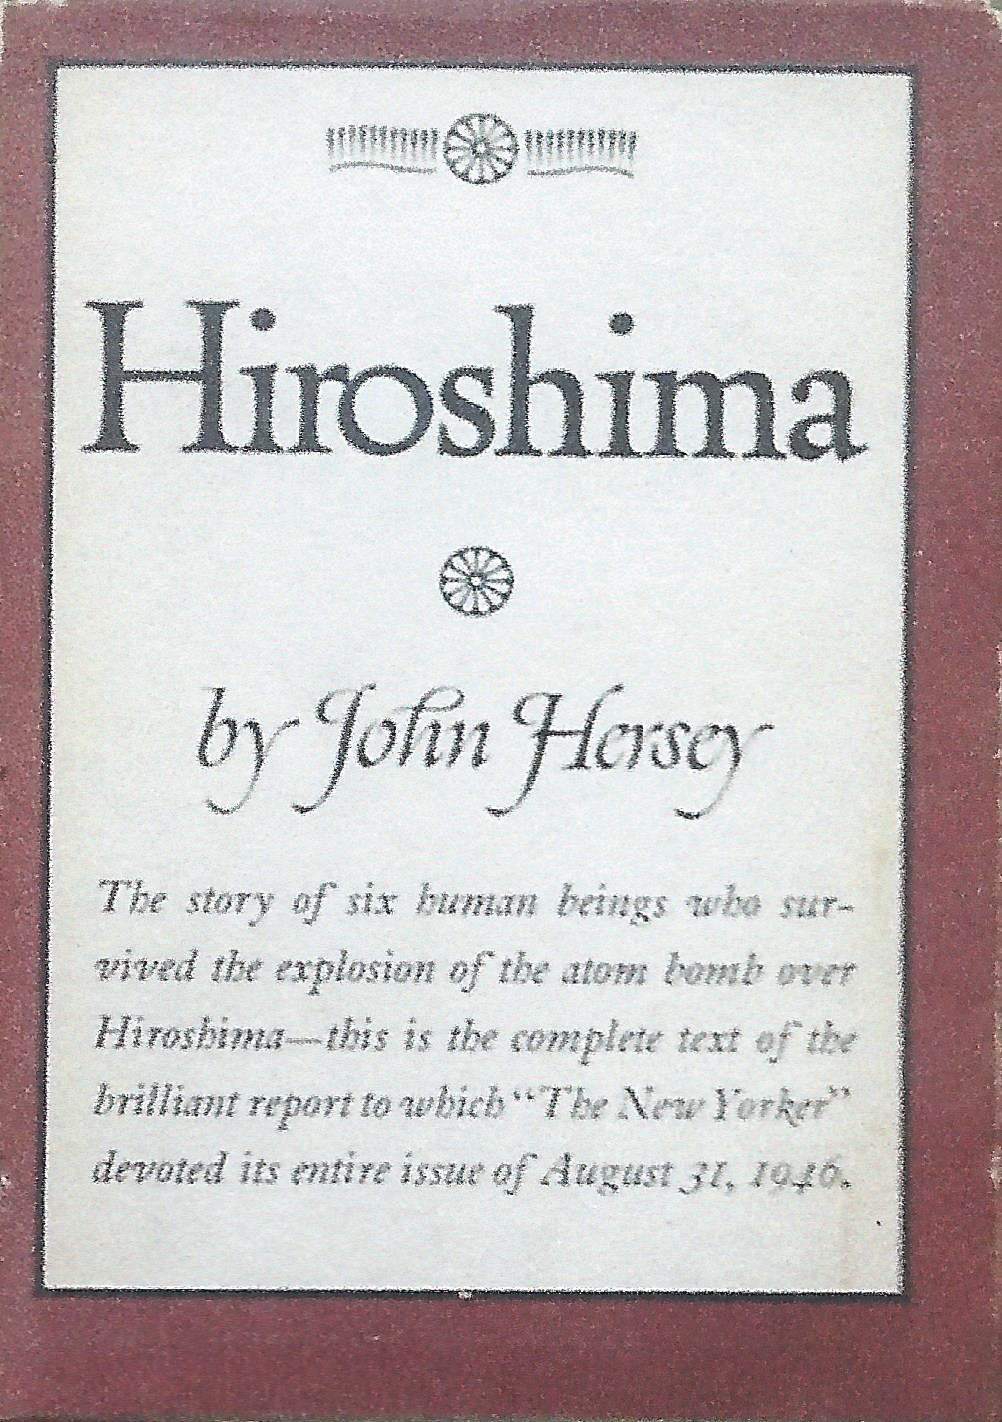 an analysis of hiroshima by john hersey Hiroshima (sparknotes literature guide) by john r hersey making the reading experience fun created by harvard students for students everywhere, sparknotes is a new breed of study guide: smarter, better, fastergeared to what today's students need to know, sparknotes provides:chapter-by-chapter analysis.